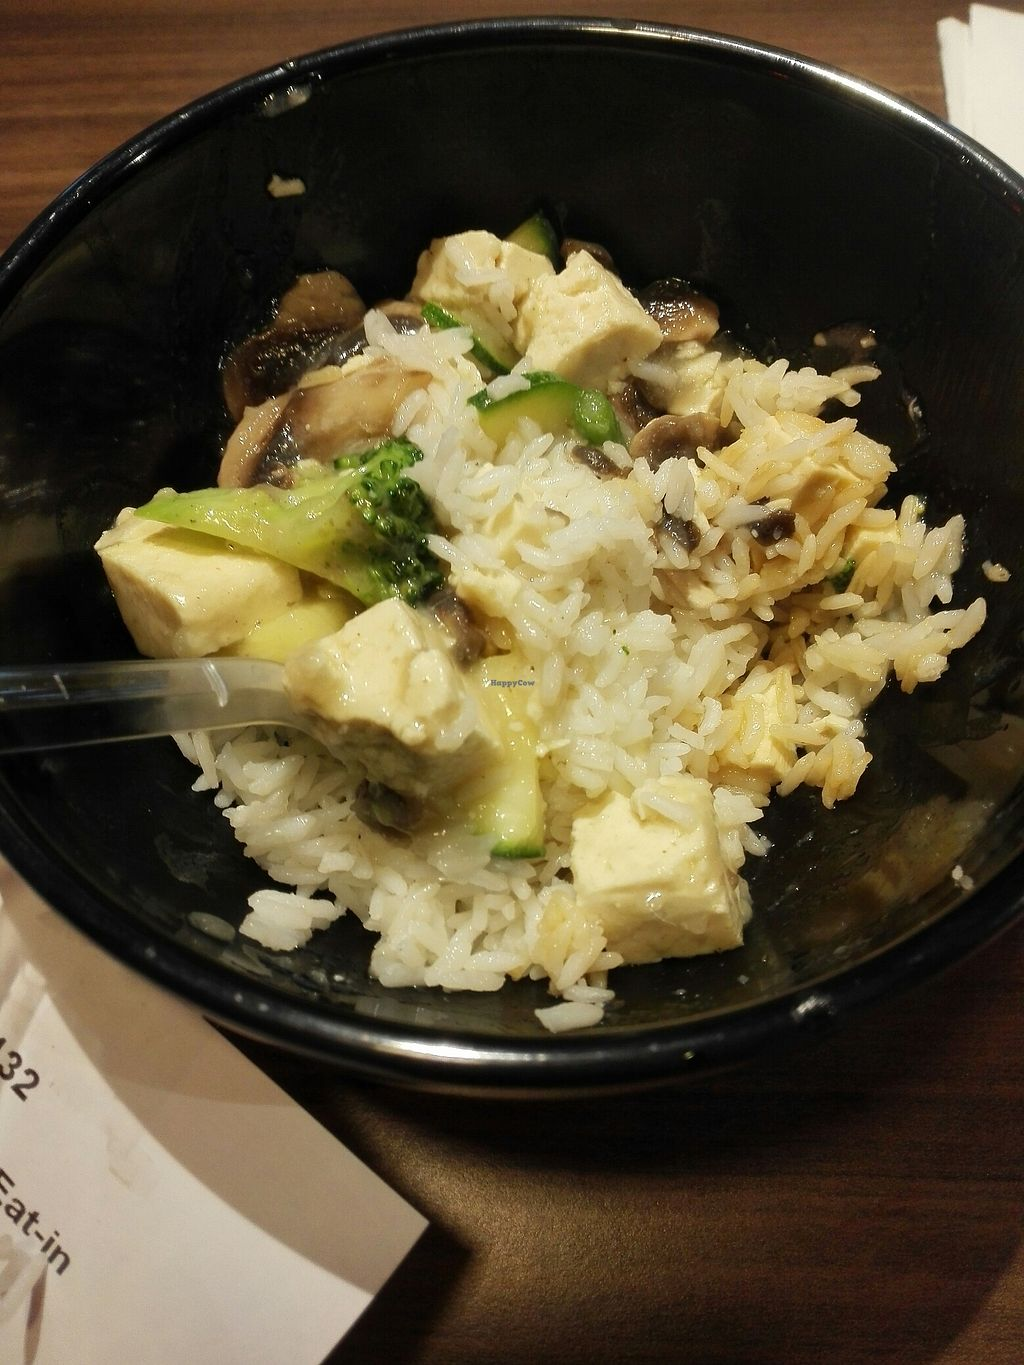 """Photo of Eazie - Herengracht  by <a href=""""/members/profile/Wooshy"""">Wooshy</a> <br/>Cooked rice, tofu, mushrooms, zucchini, broccoli and garlic sauce. Yum! <br/> July 23, 2017  - <a href='/contact/abuse/image/52810/283913'>Report</a>"""